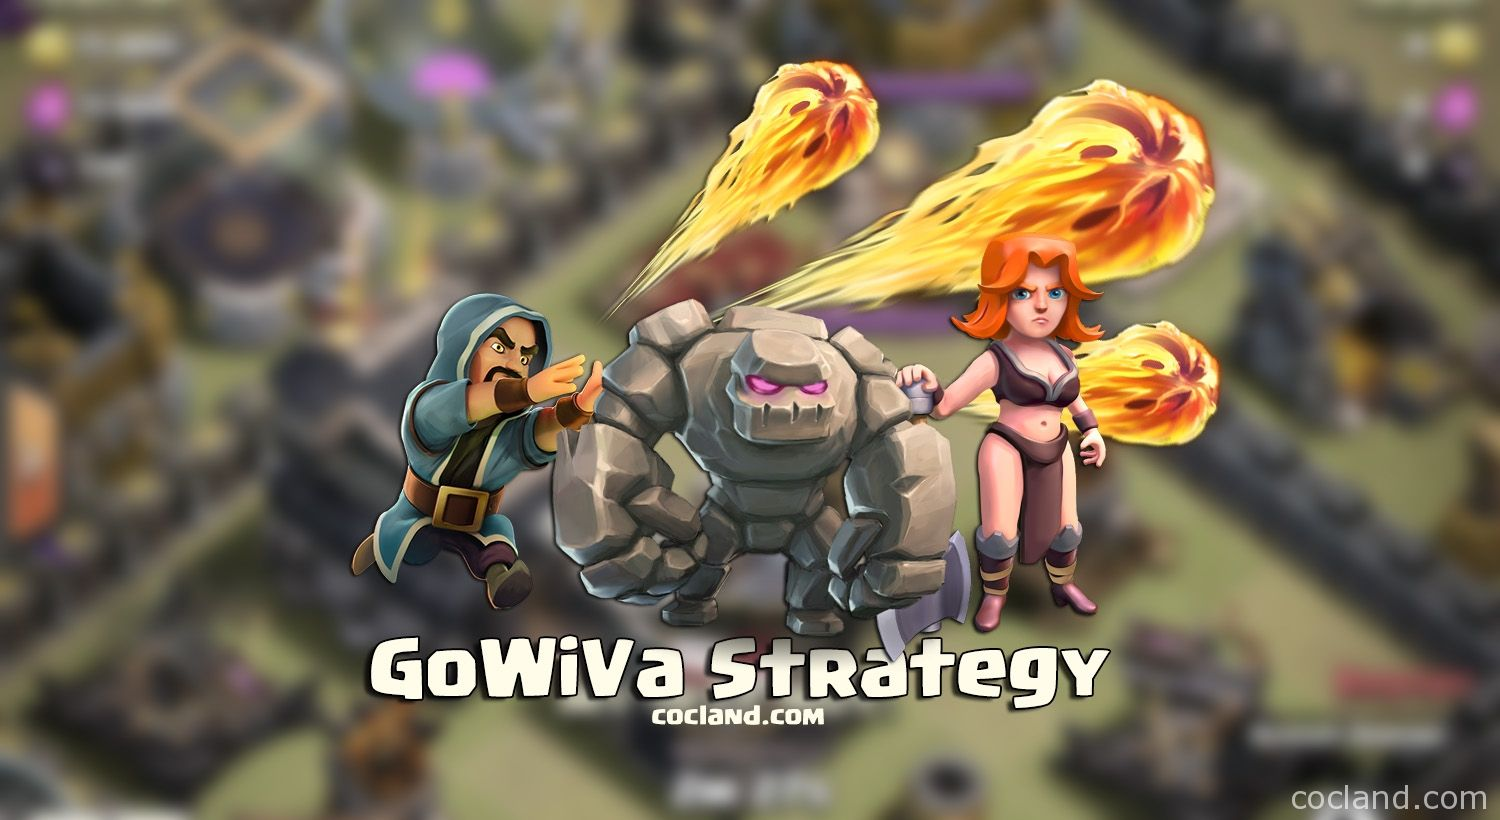 GoWiVa Attack Strategy - http://cocland.com/strategies/gowiva-attack-strategy